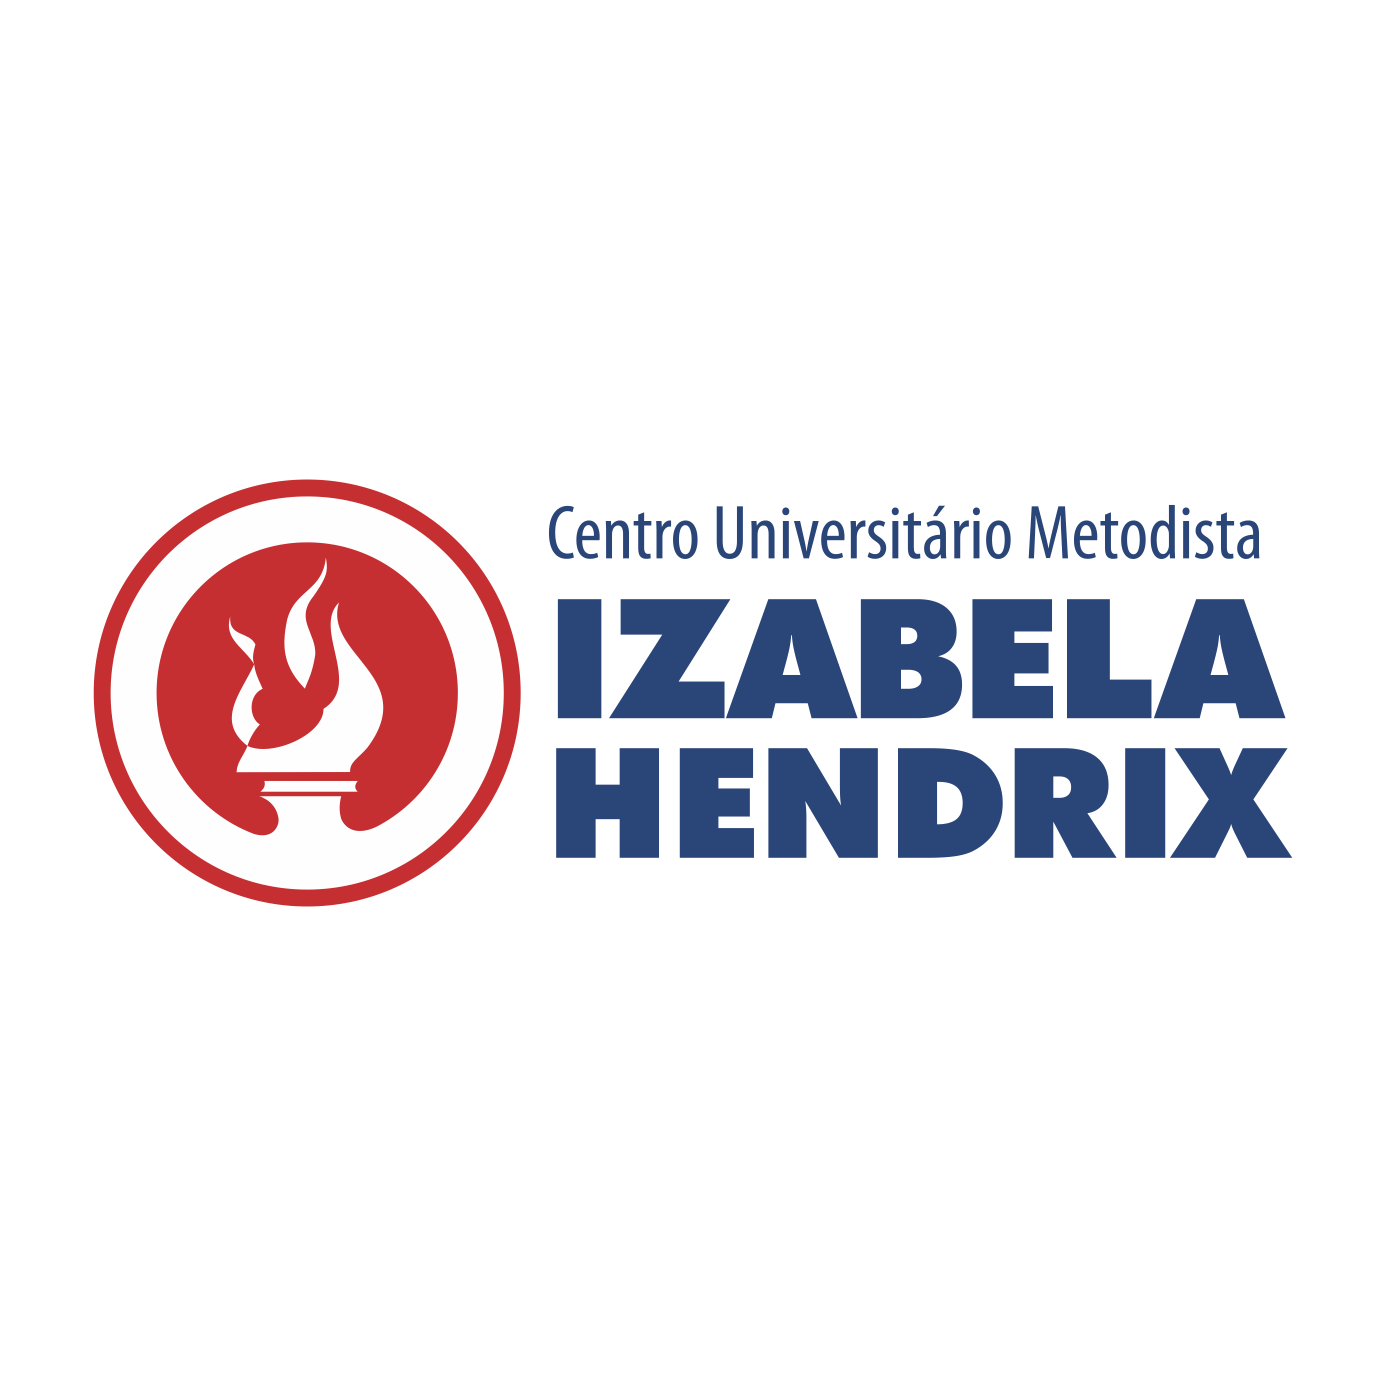 Logotipo Instituto Izabela Hendrix